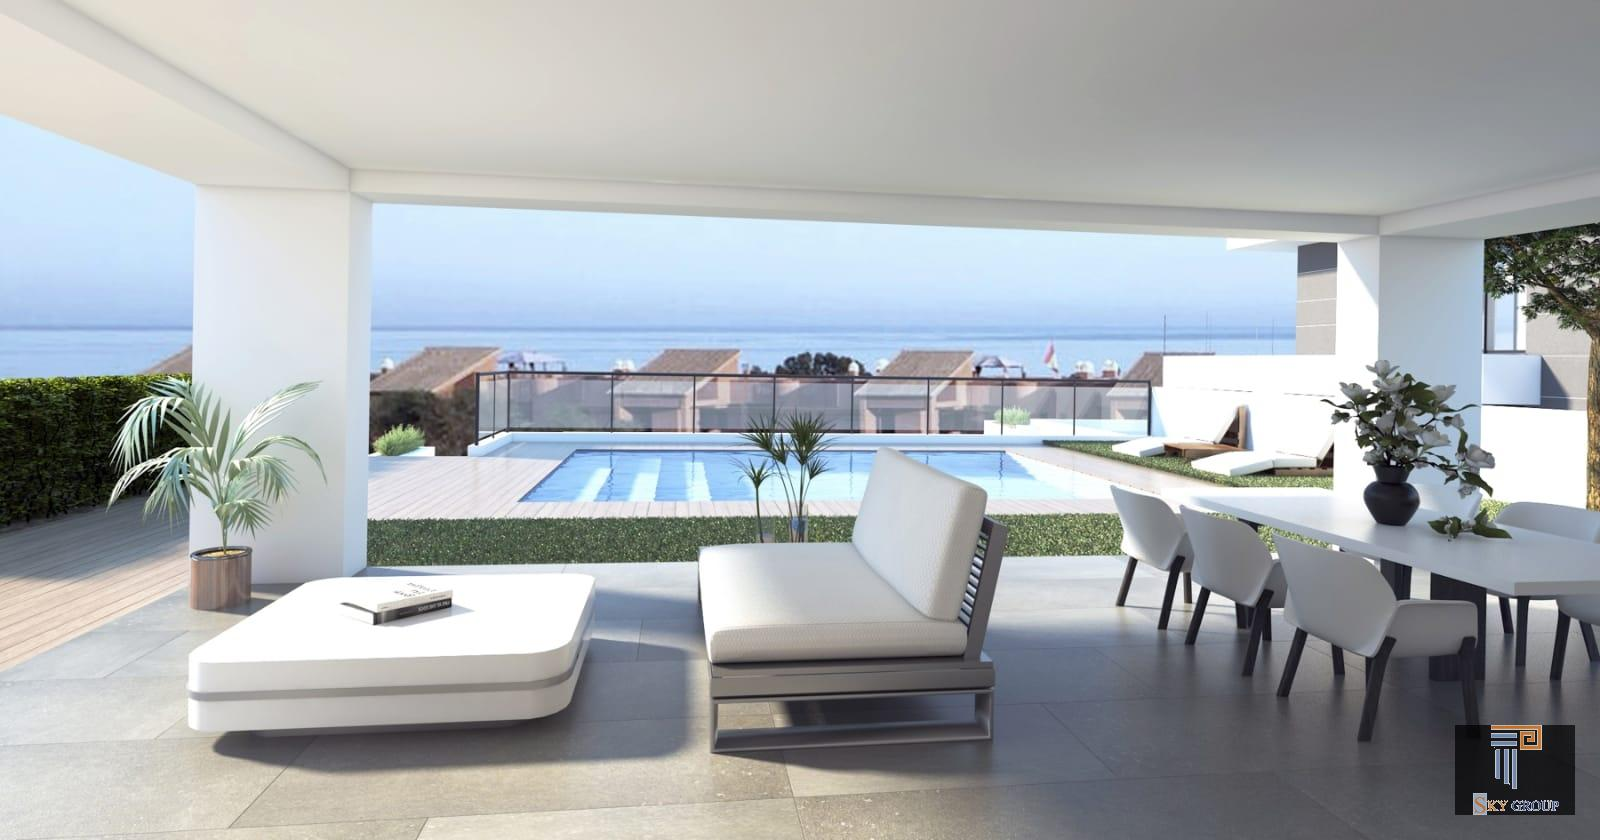 Luxury Villa for sale in Manilva Costa (Manilva), 395.000 €